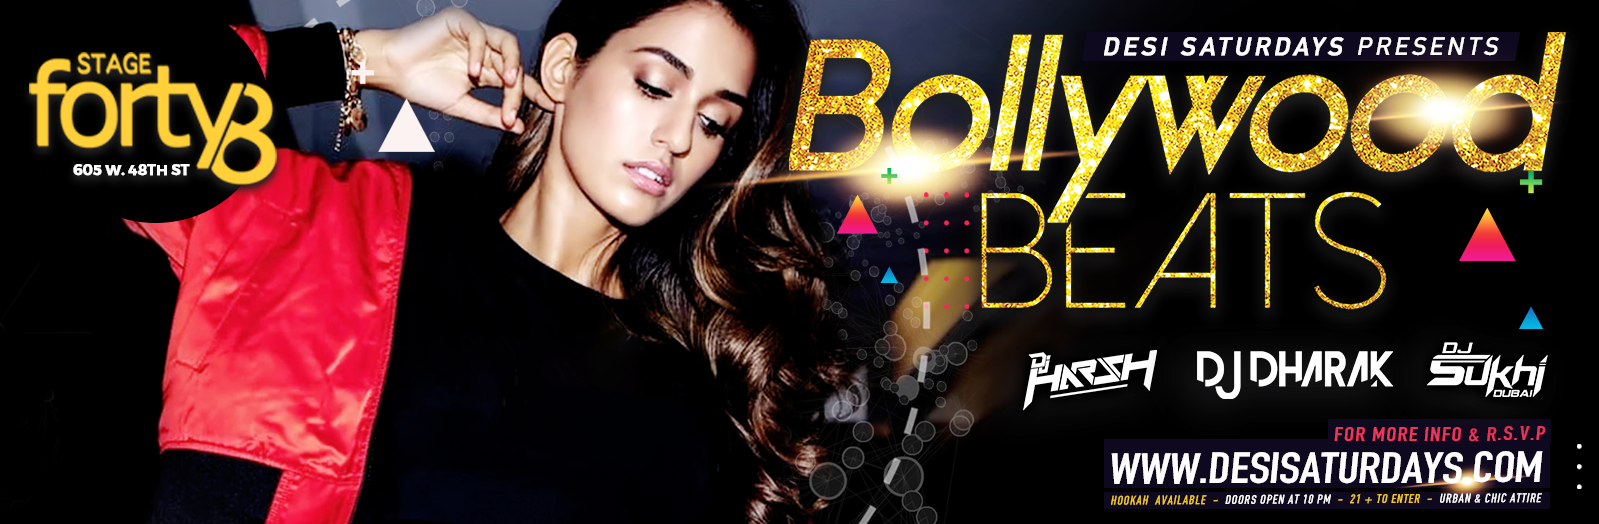 DESI PARTY IN THE CITY - WEEKLY SATURDAY NIGHT BOLLYWOOD PARTY @ STAGE48